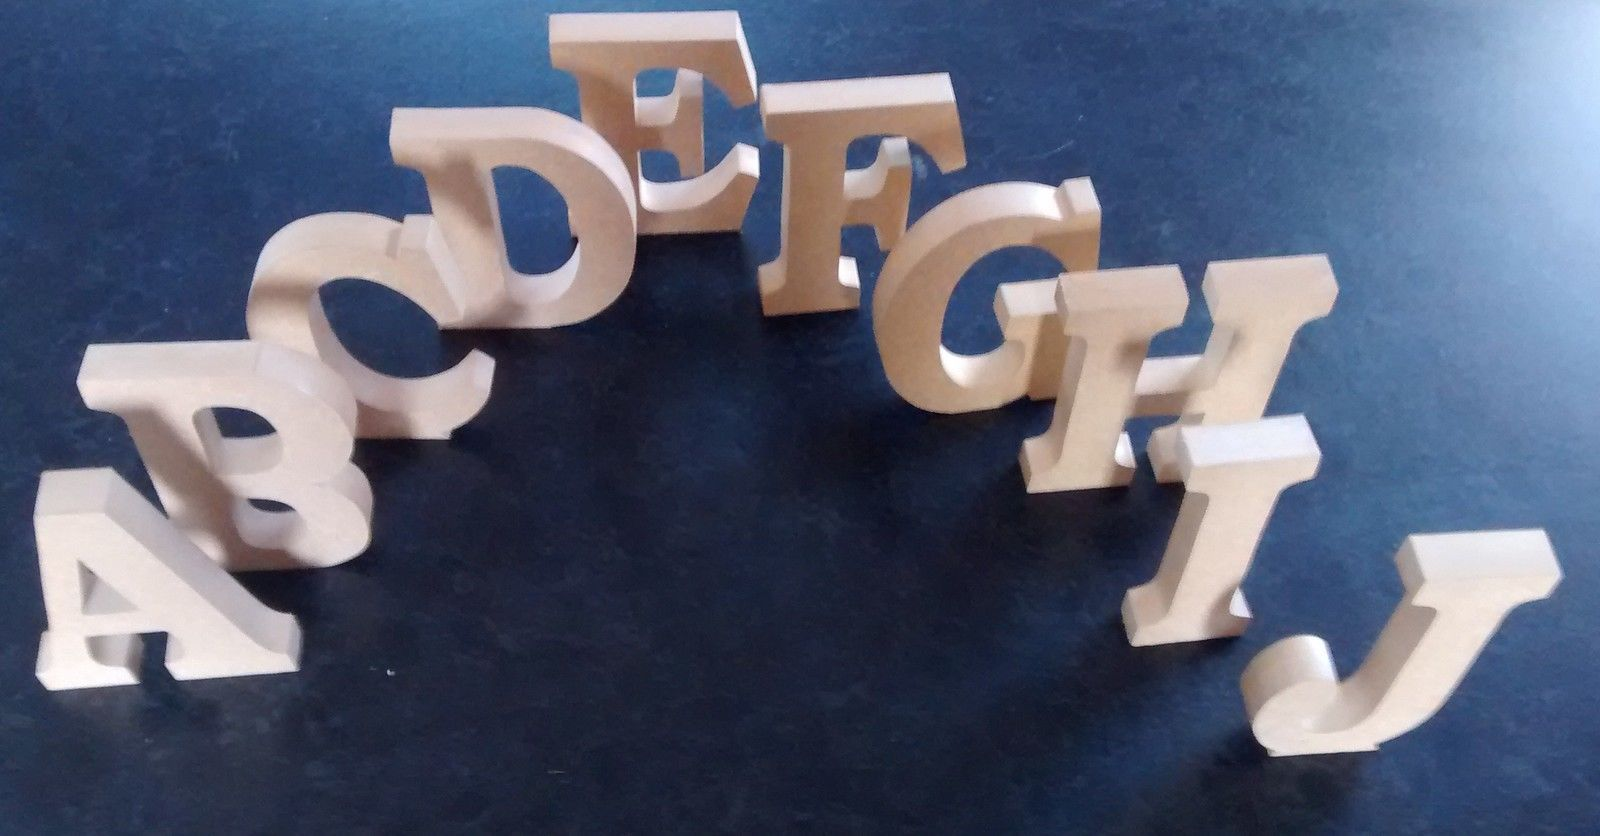 Large Freestanding Wooden Letters Free Standing Wooden Letters Home Decor Name Large Mdf